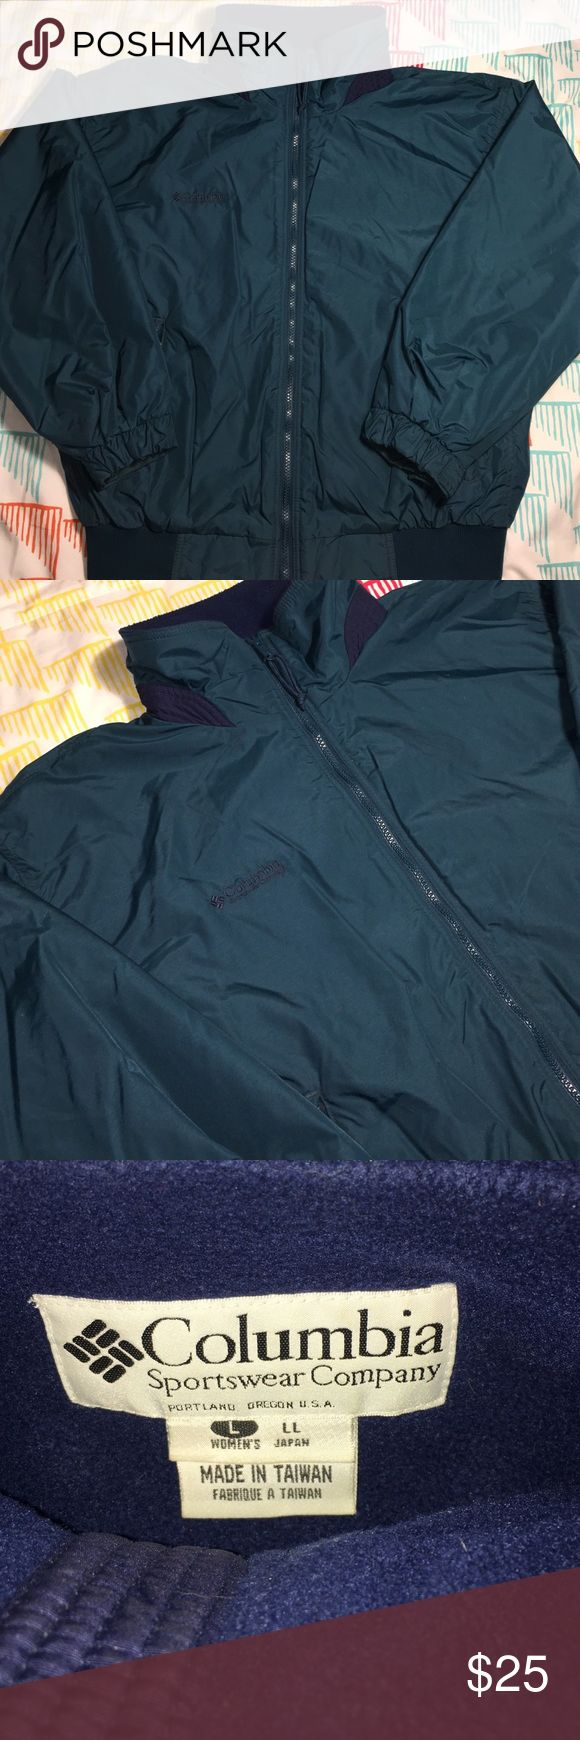 Columbia Sportswear Fleece Lined Jacket Size Large - Condition 9.5/10 Columbia Jackets & Coats